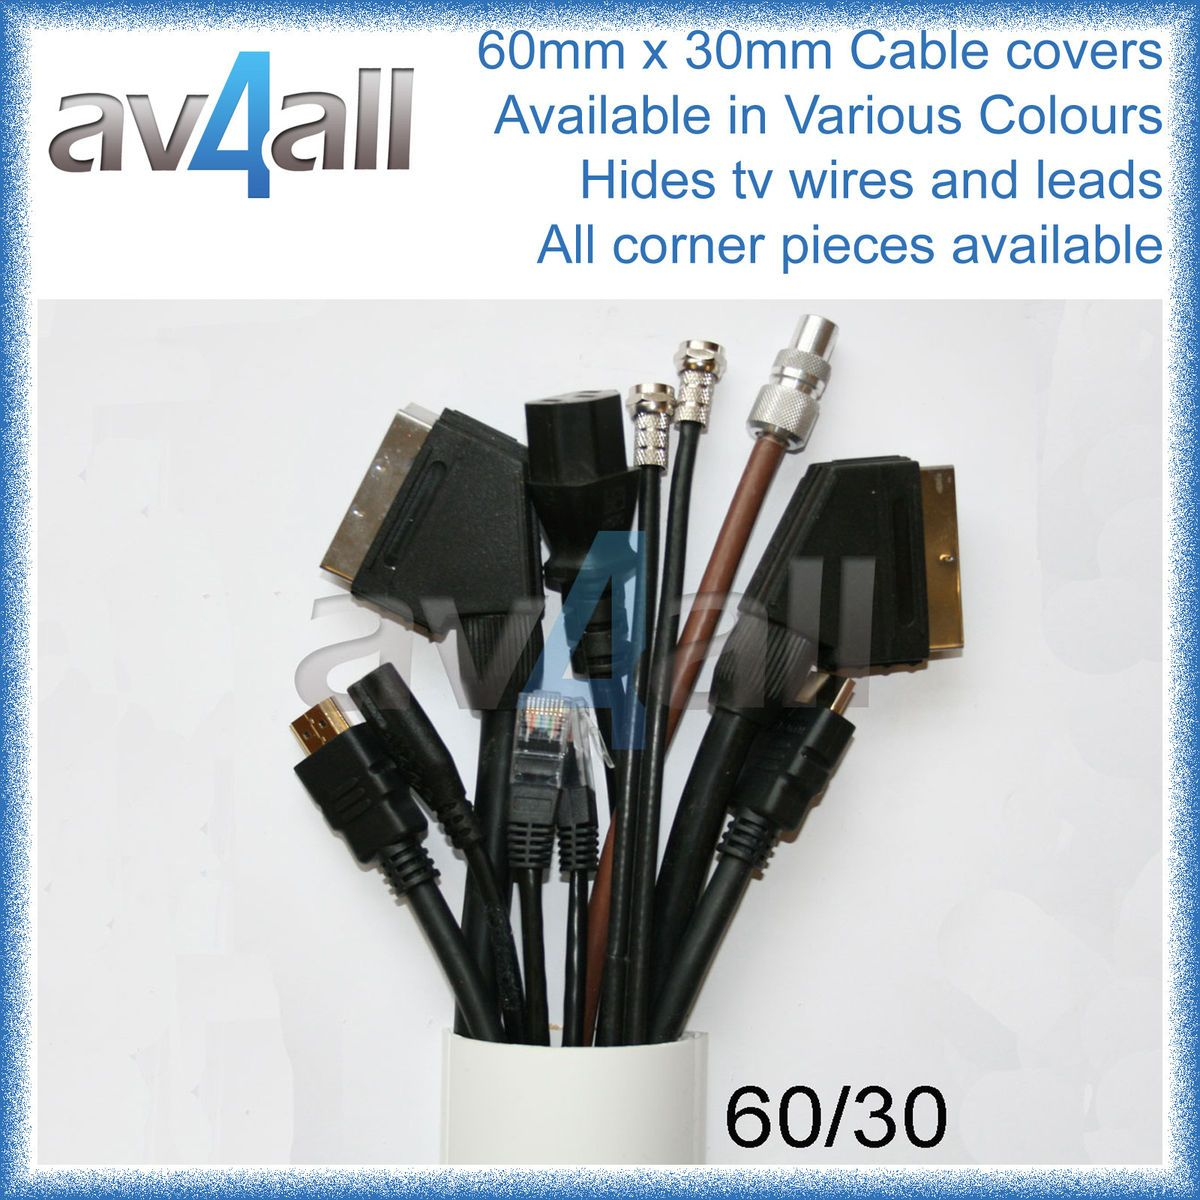 Line 60x30 Cable TV Wire Covers Trunking Hide TV Wire Hiding Cable